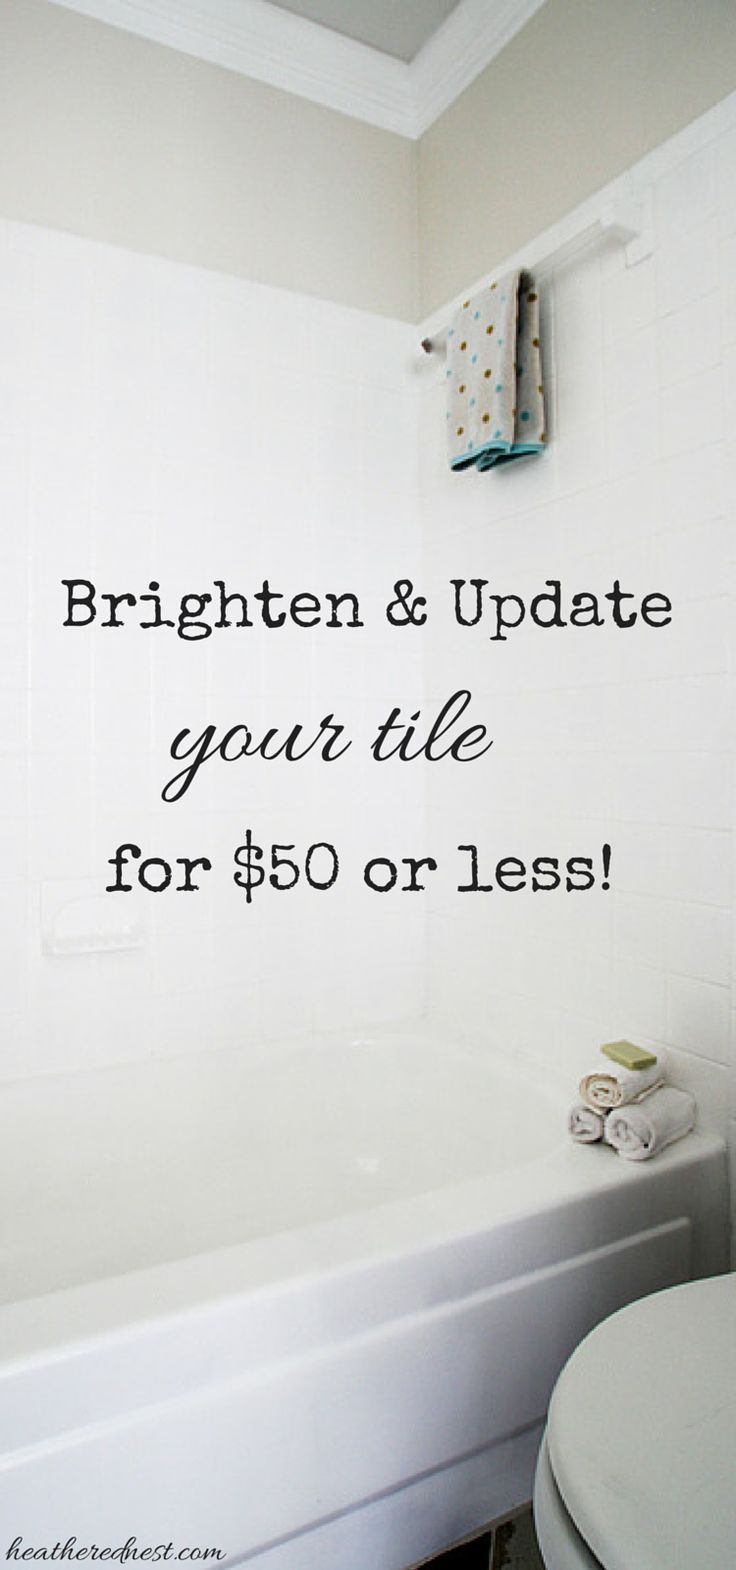 Delighted Painting A Bathtub Tiny Bathtub Restoration Companies Regular Can A Bathtub Be Painted Can You Paint A Porcelain Bathtub Young Shower Refinishing Cost OrangeRefinish Clawfoot Tub Cost 108 Best Bathroom Projects Images On Pinterest